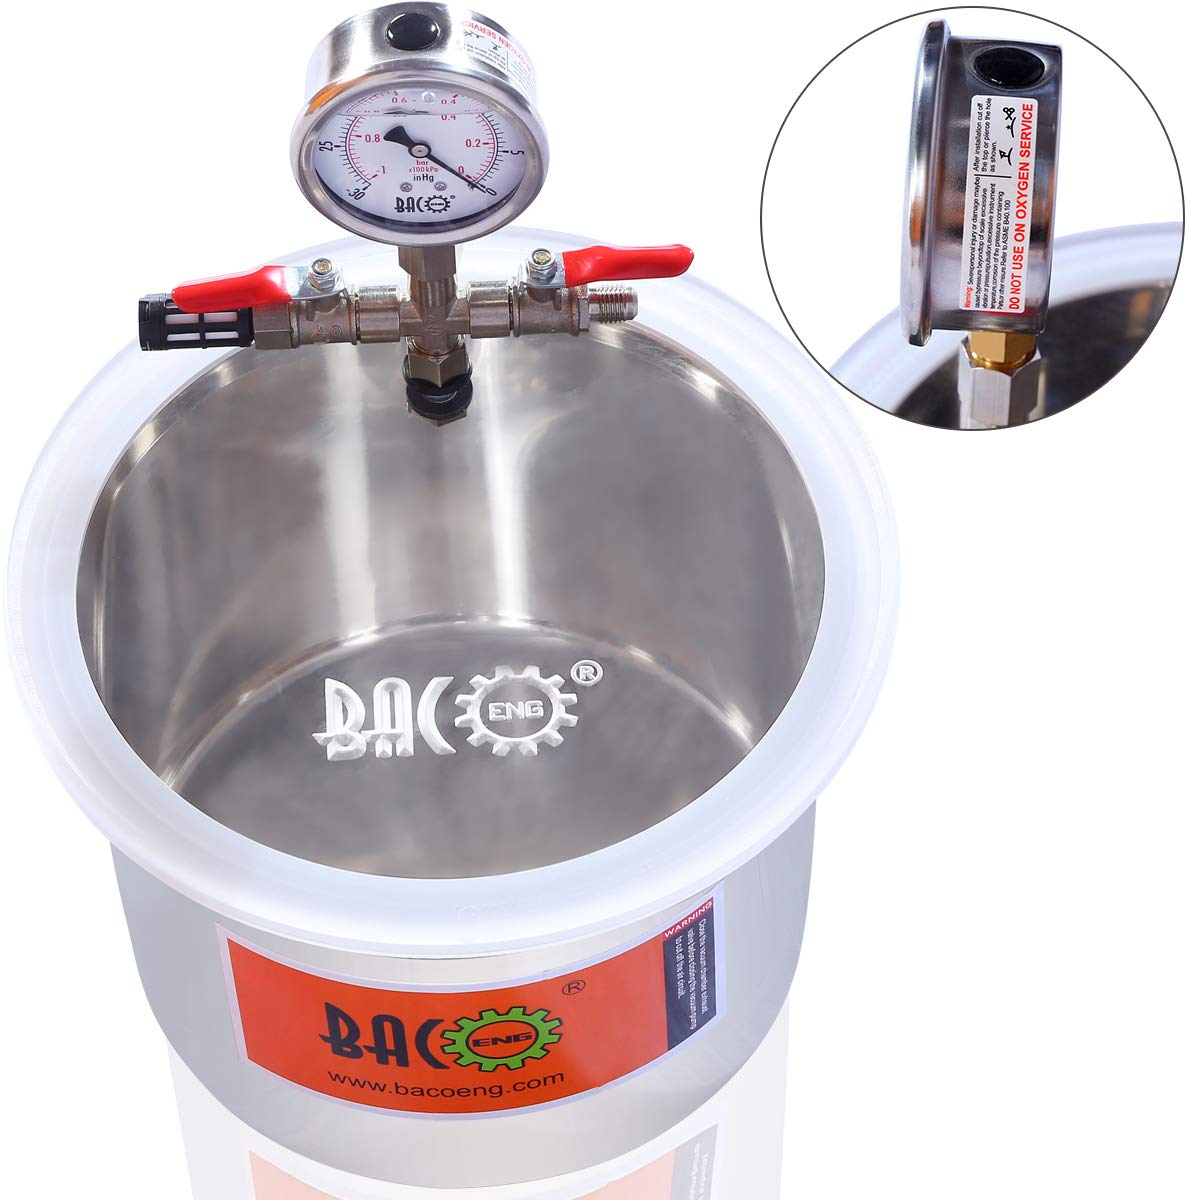 BACOENG 1.5 Gallon Stainless Steel Vacuum Chamber Silicone Kit for Degassing Resins, Silicone and Epoxies by BACOENG (Image #2)